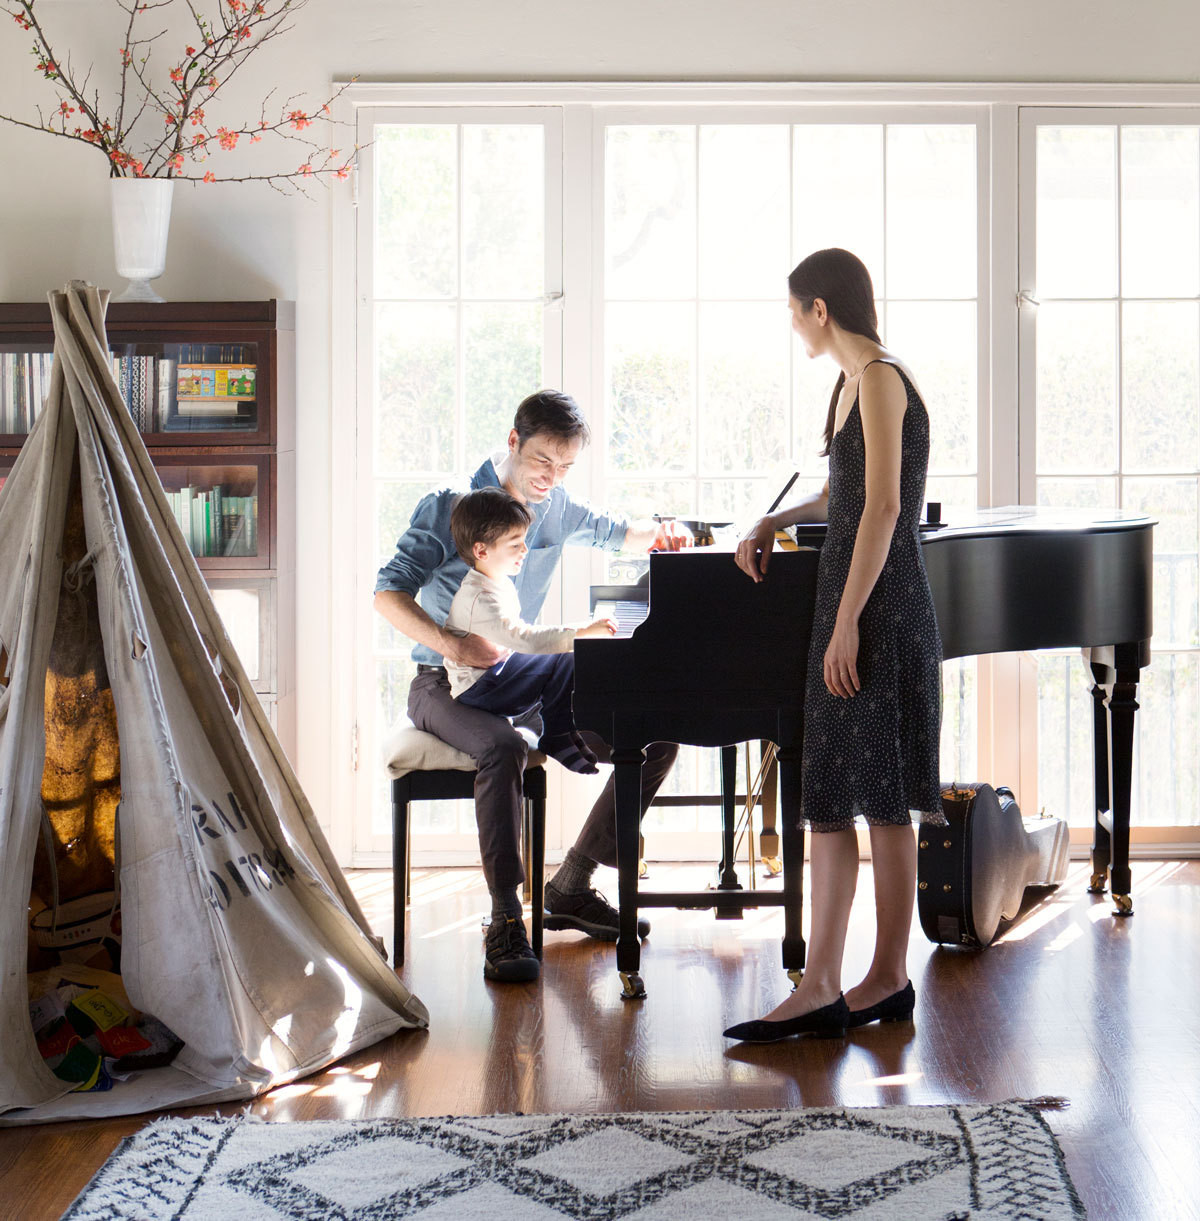 Andrew Bird, Katherine Tsina, and their son, Sam, in their Los Angeles residence. Prop styling by Britt Browne.